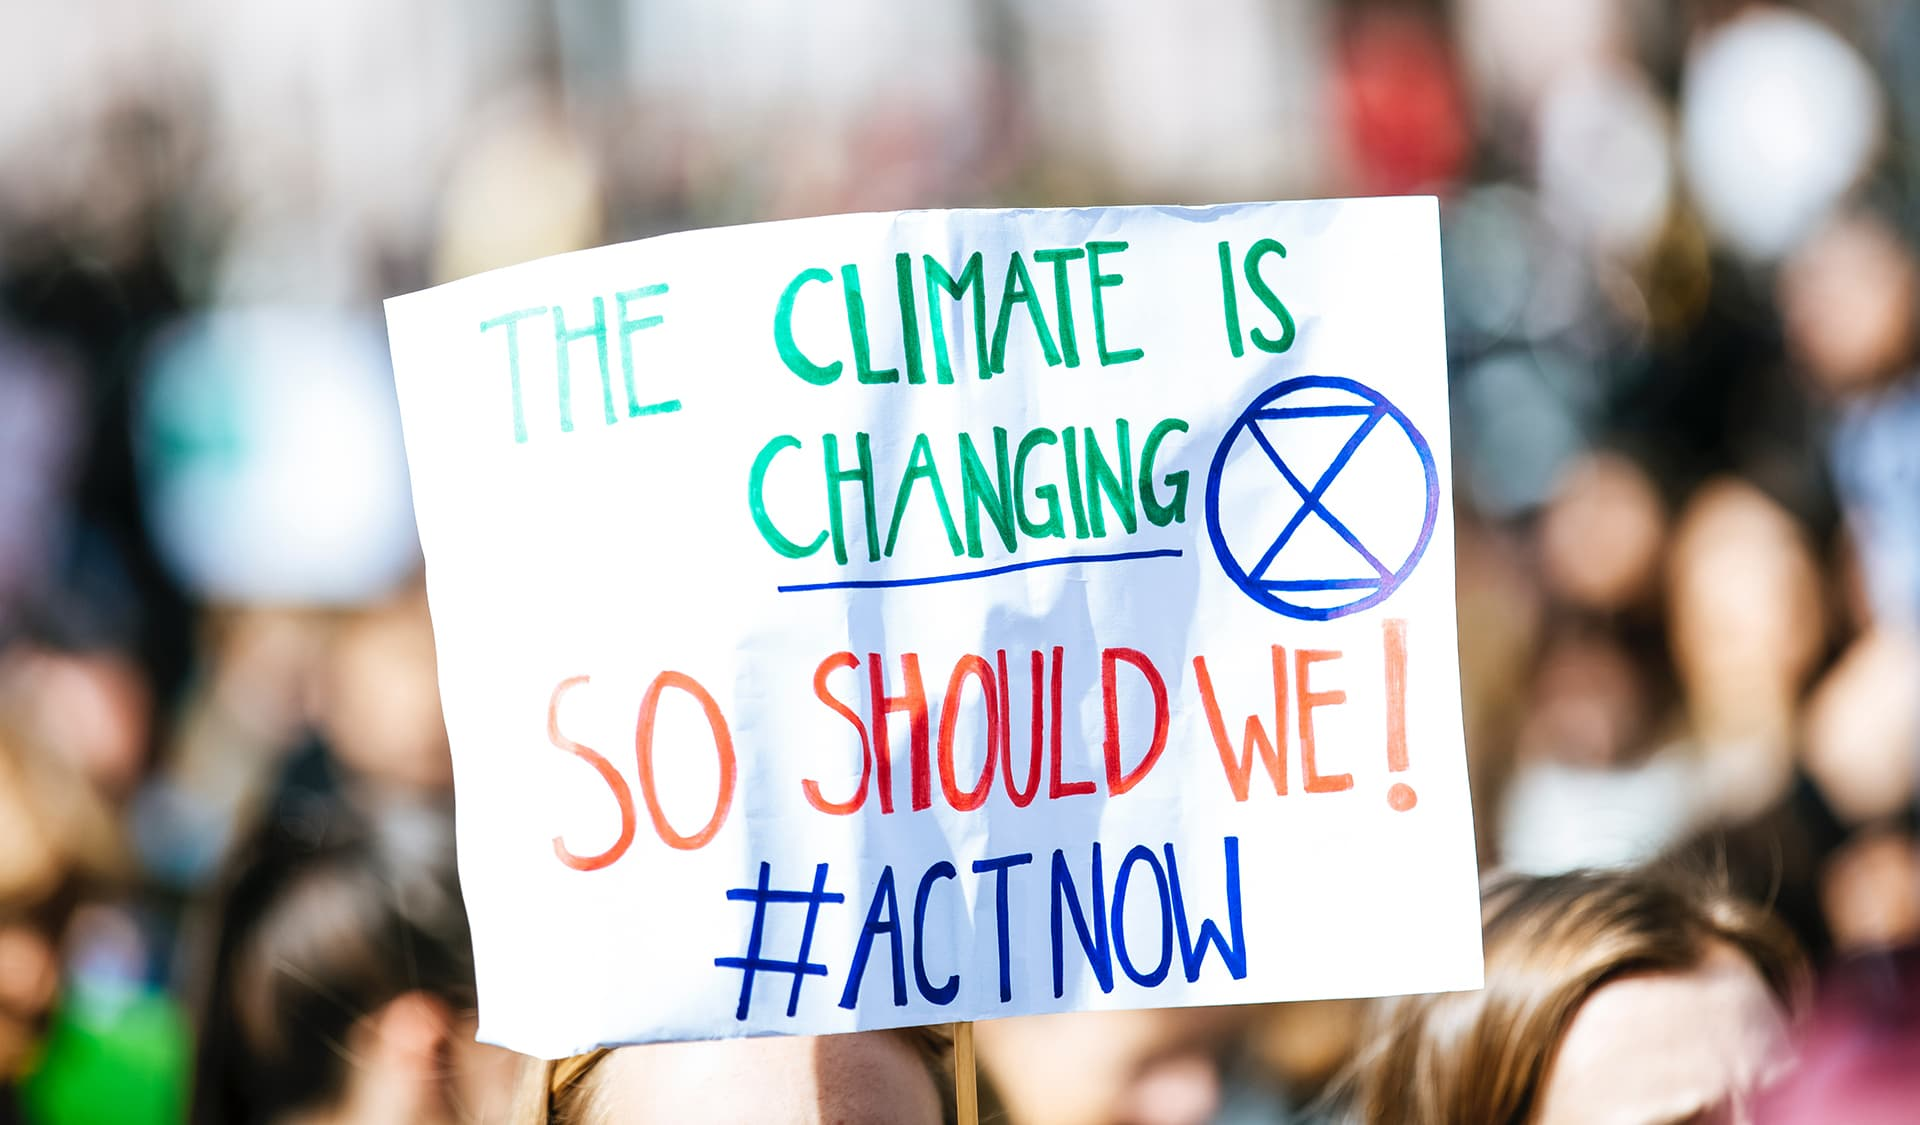 Protestplakat: The climate is changing, so should we!